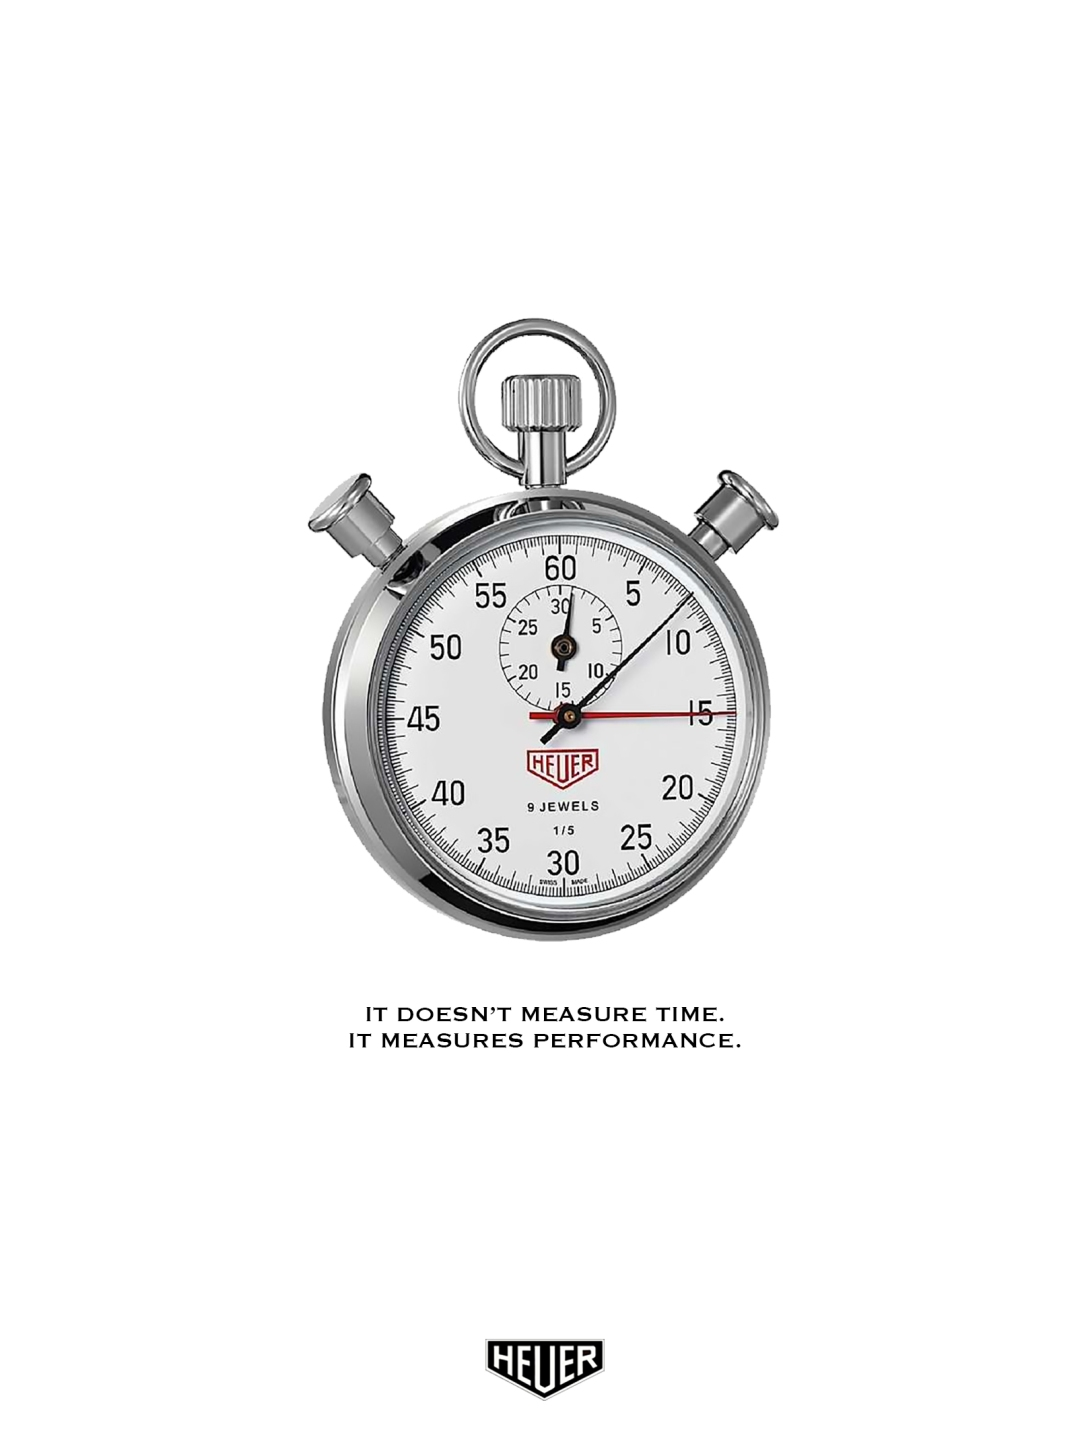 rough advertising concept for a stopwatch brand - it doesn't measure time, it measures performance